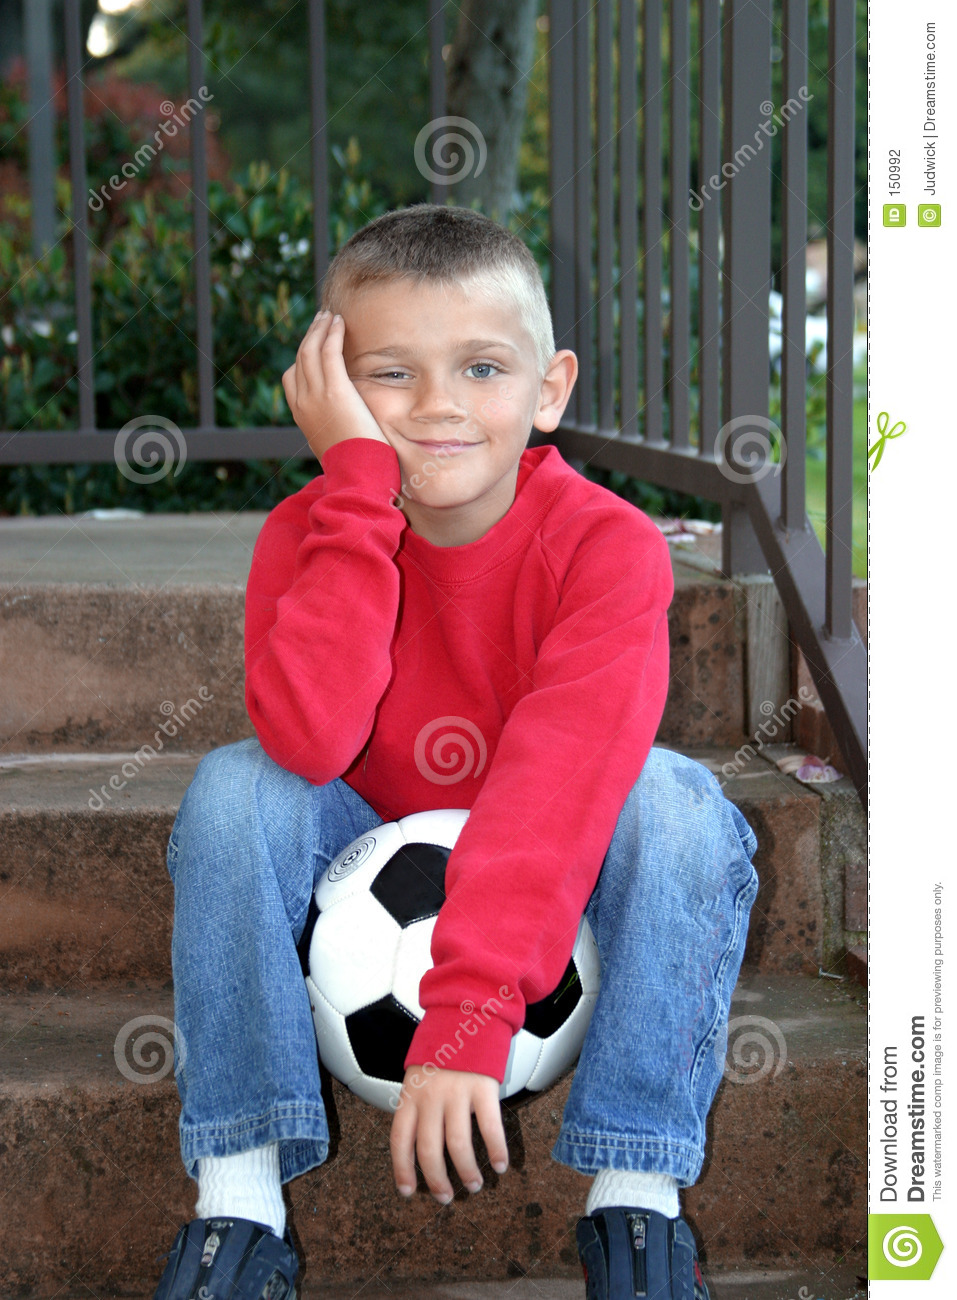 Boy Waiting to Play